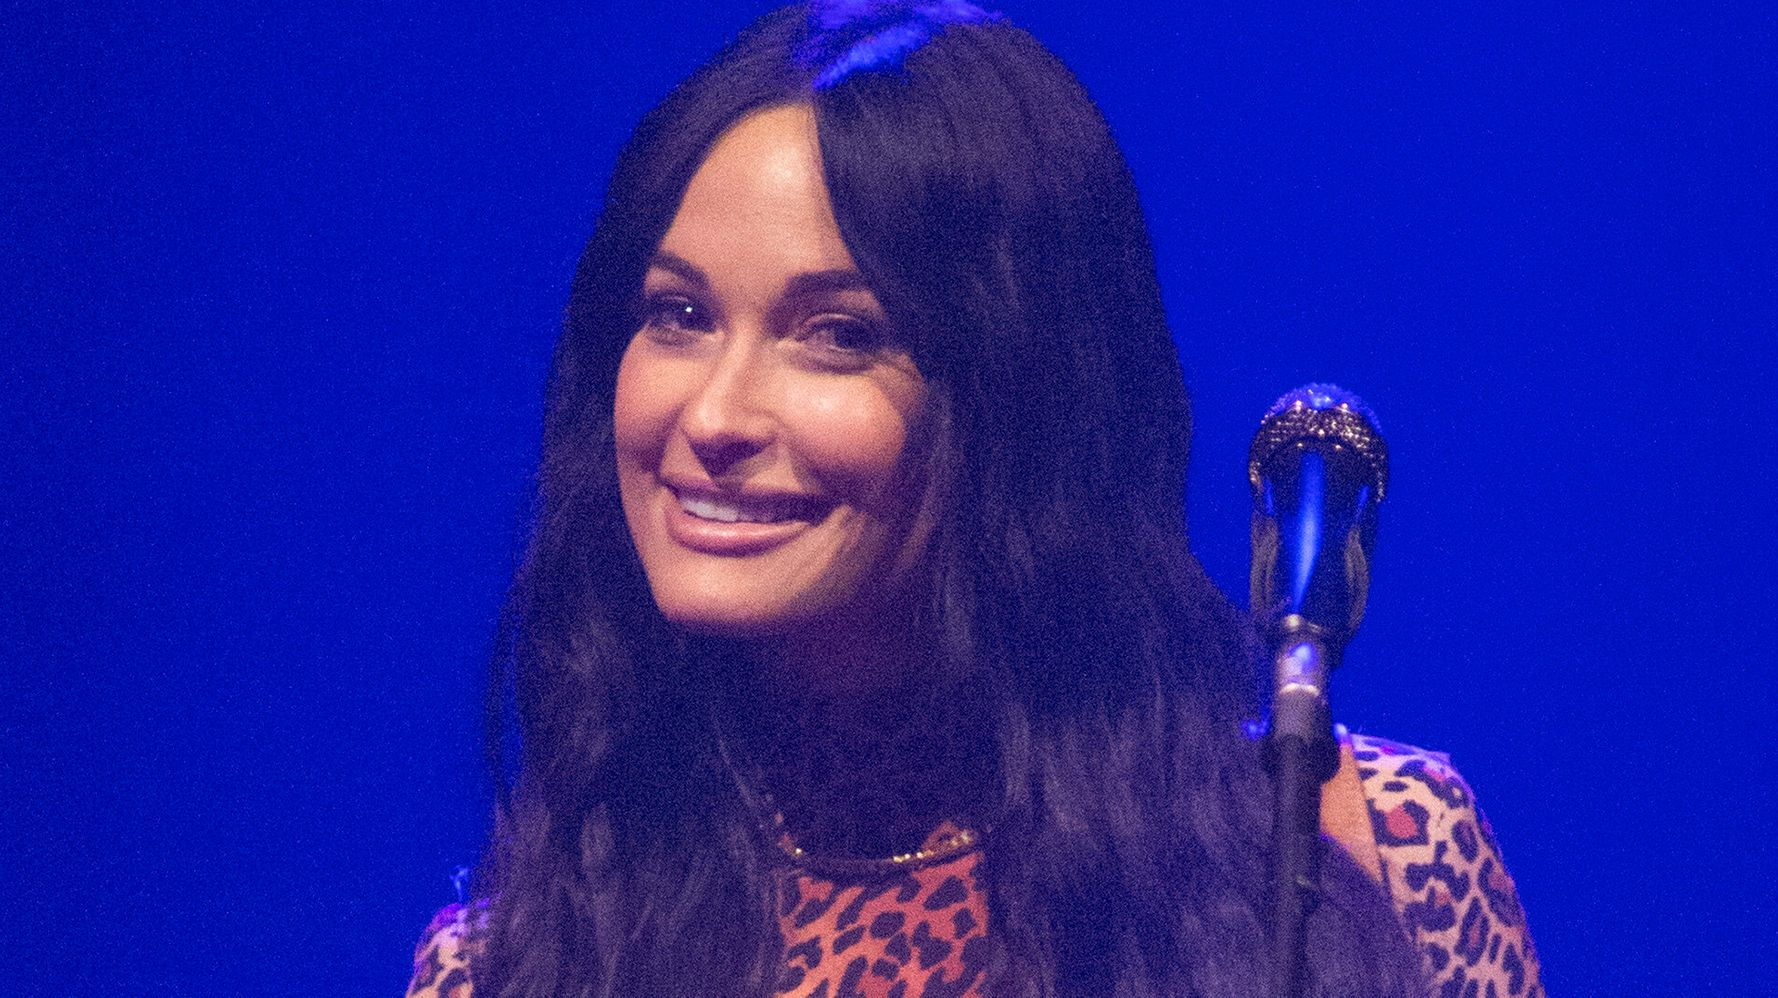 Westlake Legal Group 5dd24ed92500007f08d2d5f4 Kacey Musgraves' Heart-Melting Throwback Video Proves Dreams Do Come True